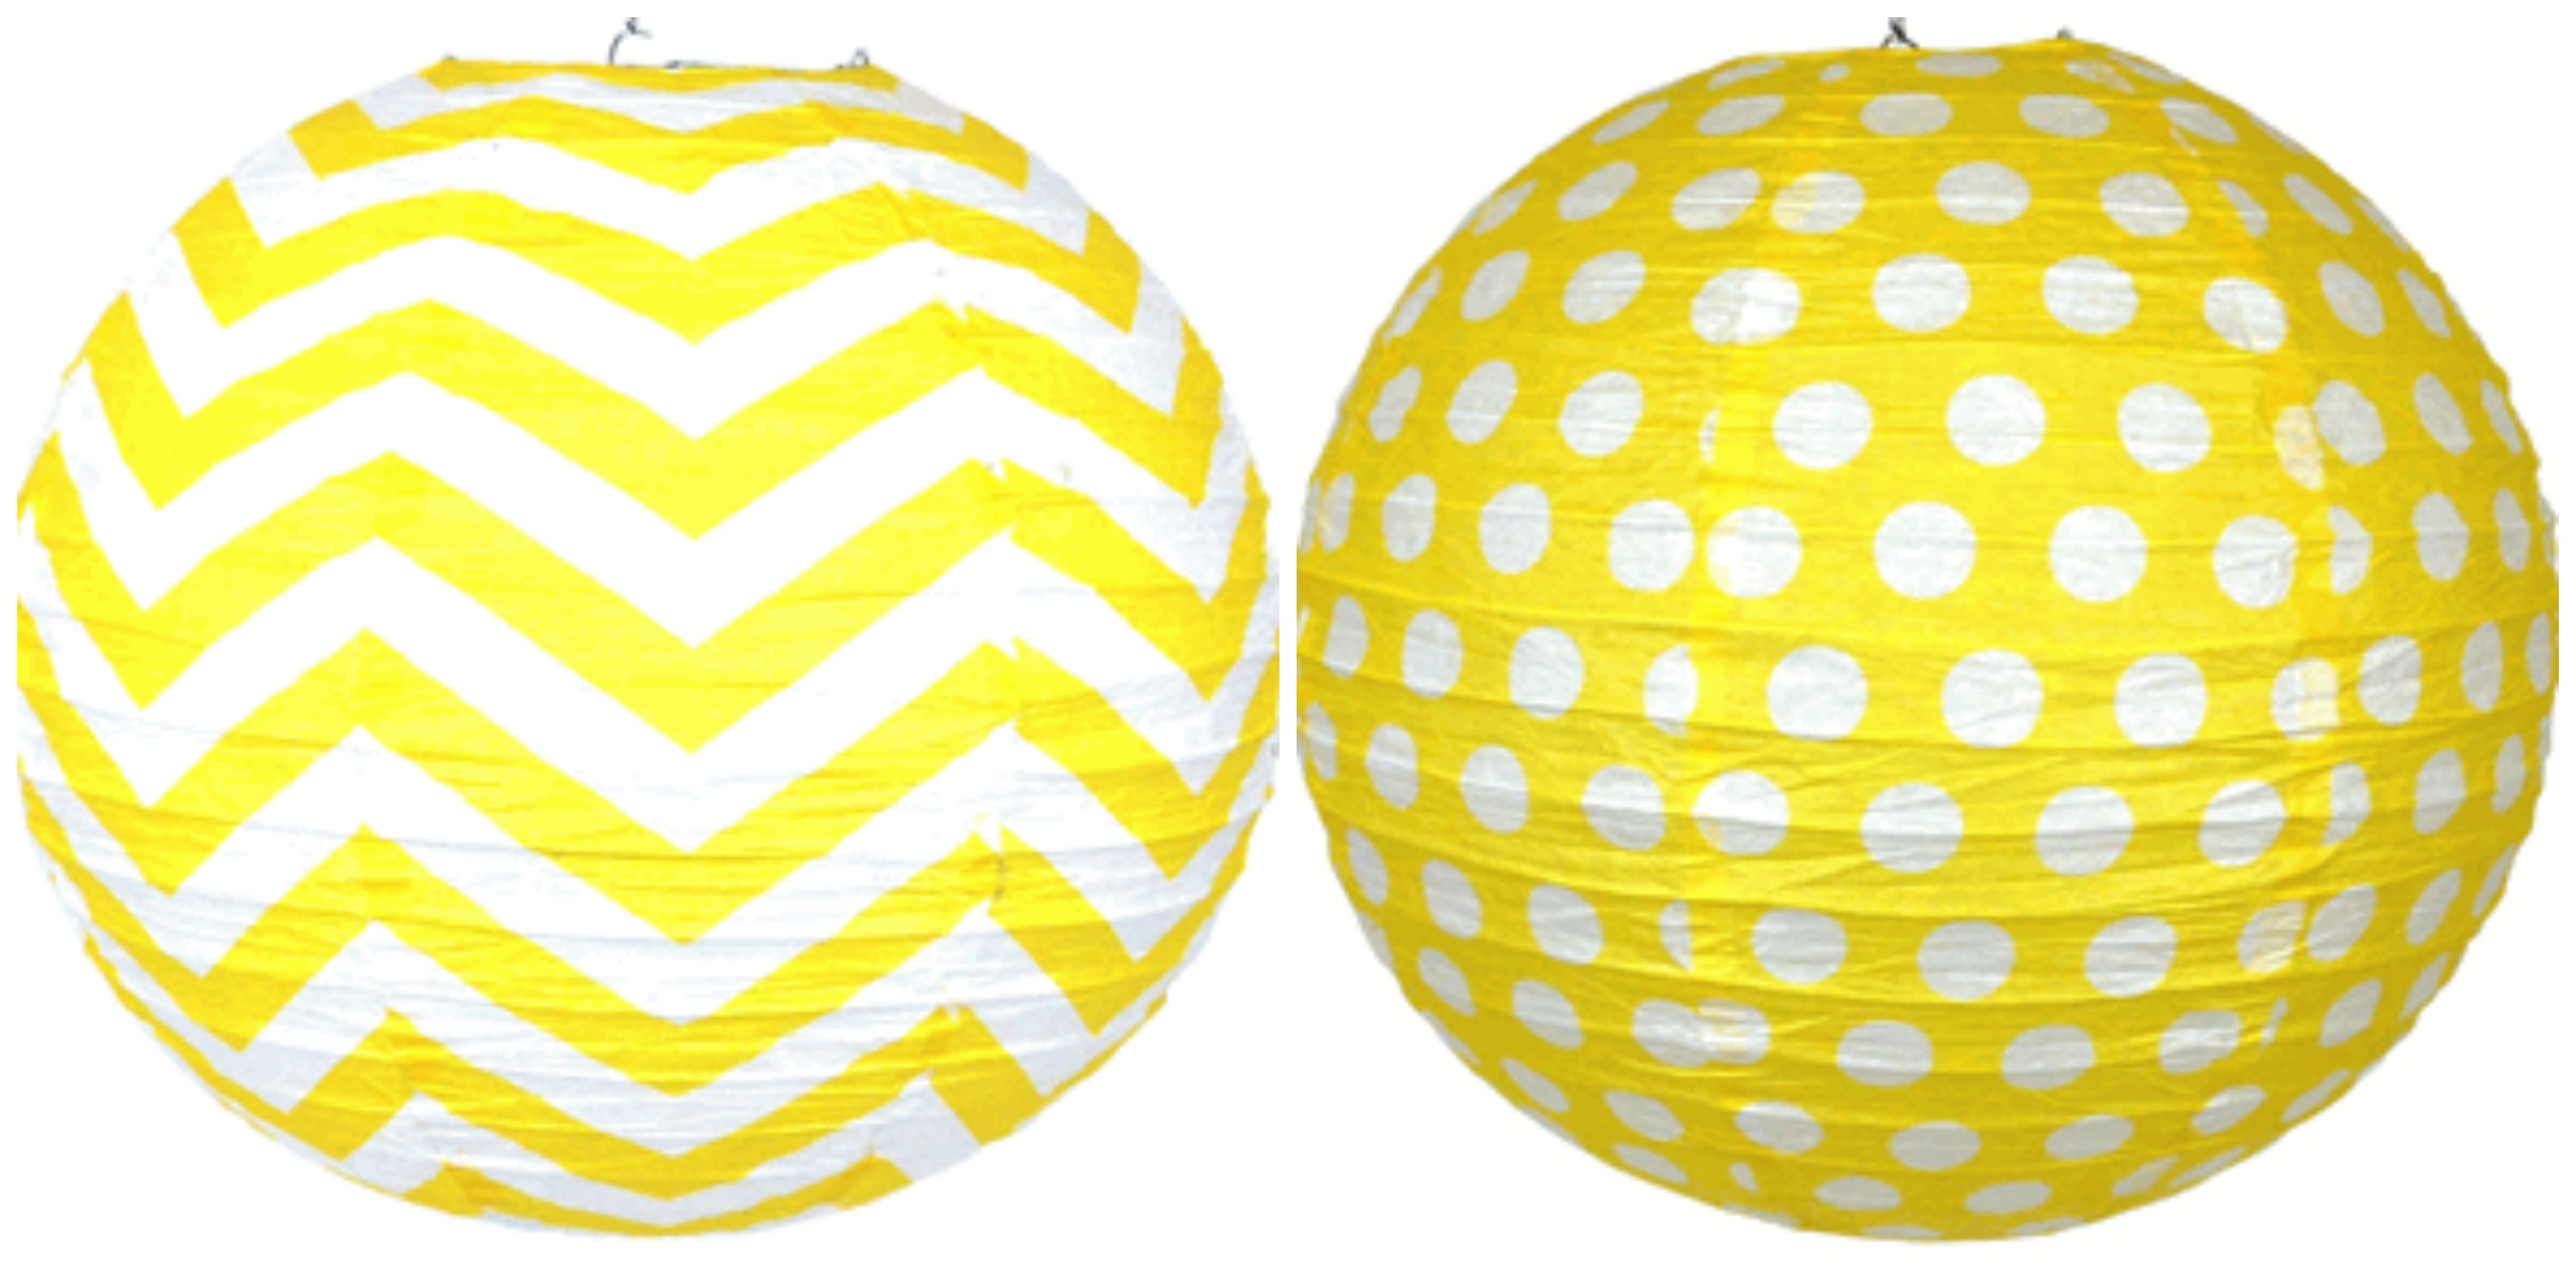 yellow and white chevron polka dots classroom decor by Schoolgirl Style